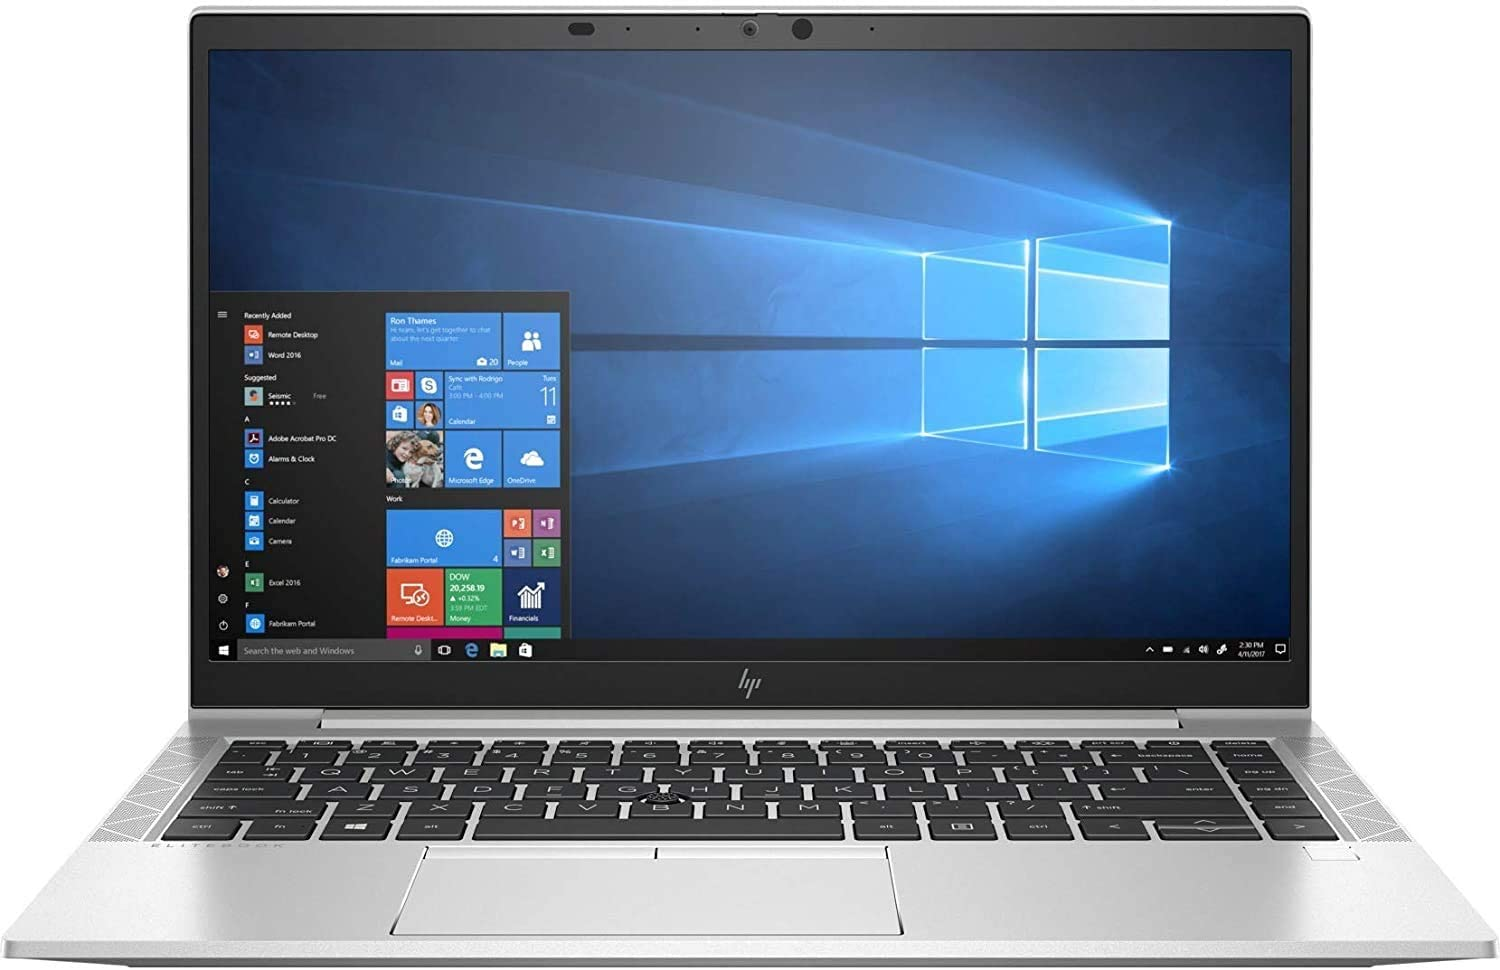 Laptop HP Elitebook 840 G8 (3G0Z5PA)/ Intel Core i5-1135G7 (up to 4.20 Ghz, 8 MB)/ 8GB DDR4/ 256GB SSD/ Intel Iris Xe Graphics / 14.0 inch FHD AG/ 3Cell/ Win 10 Pro/ 3Yrs